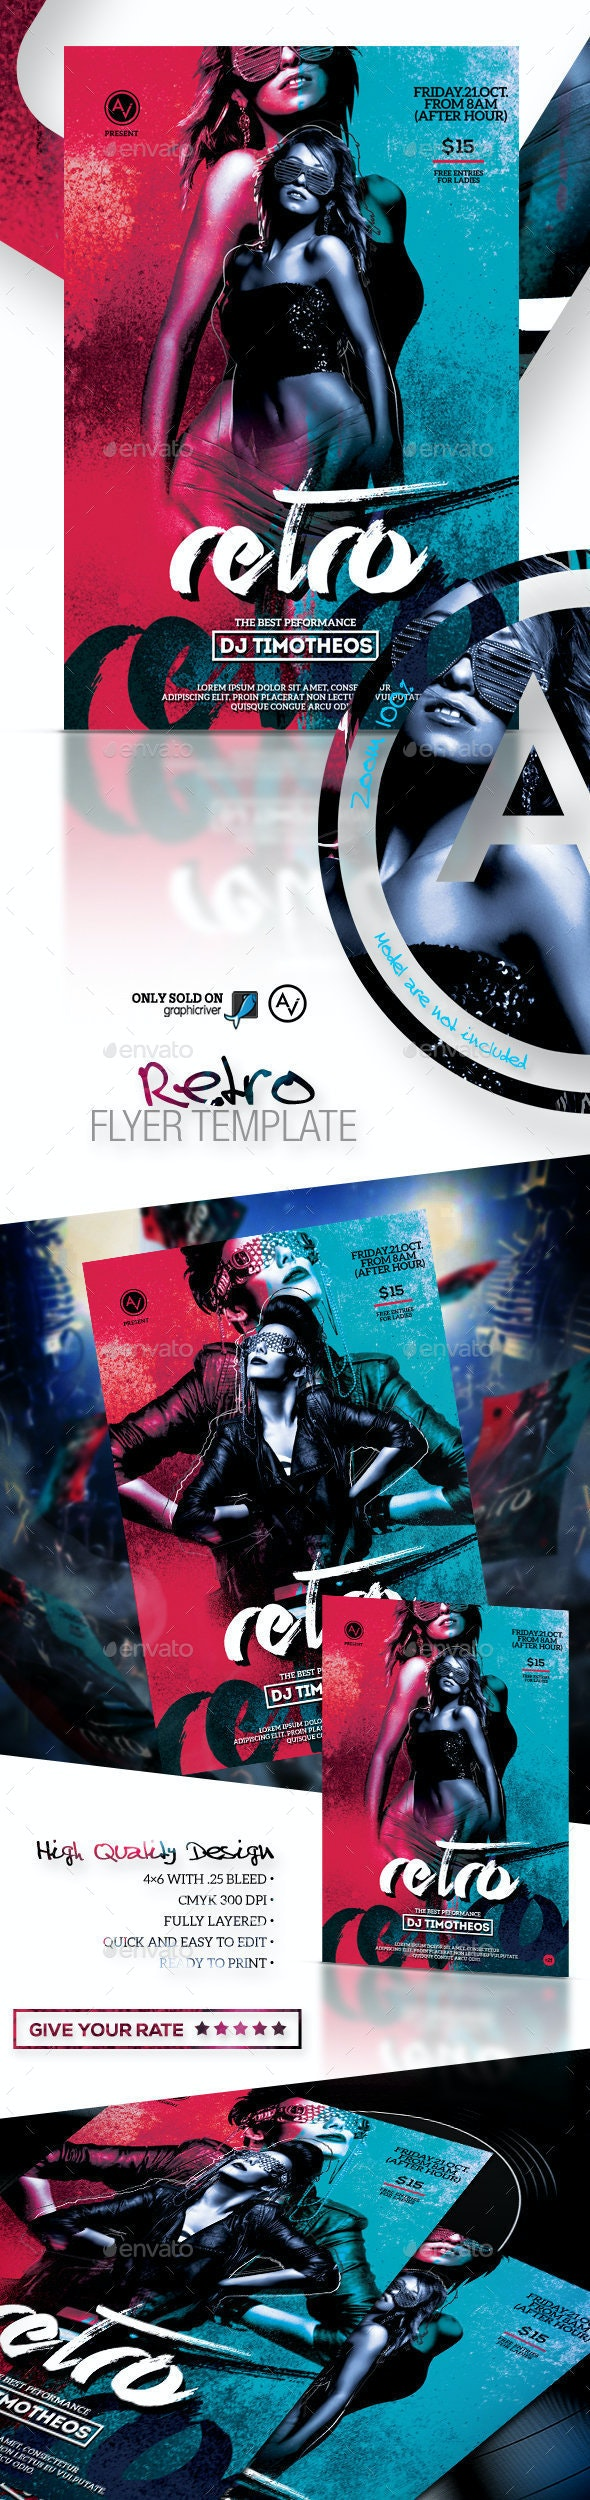 Retro Flyer Template - Clubs & Parties Events